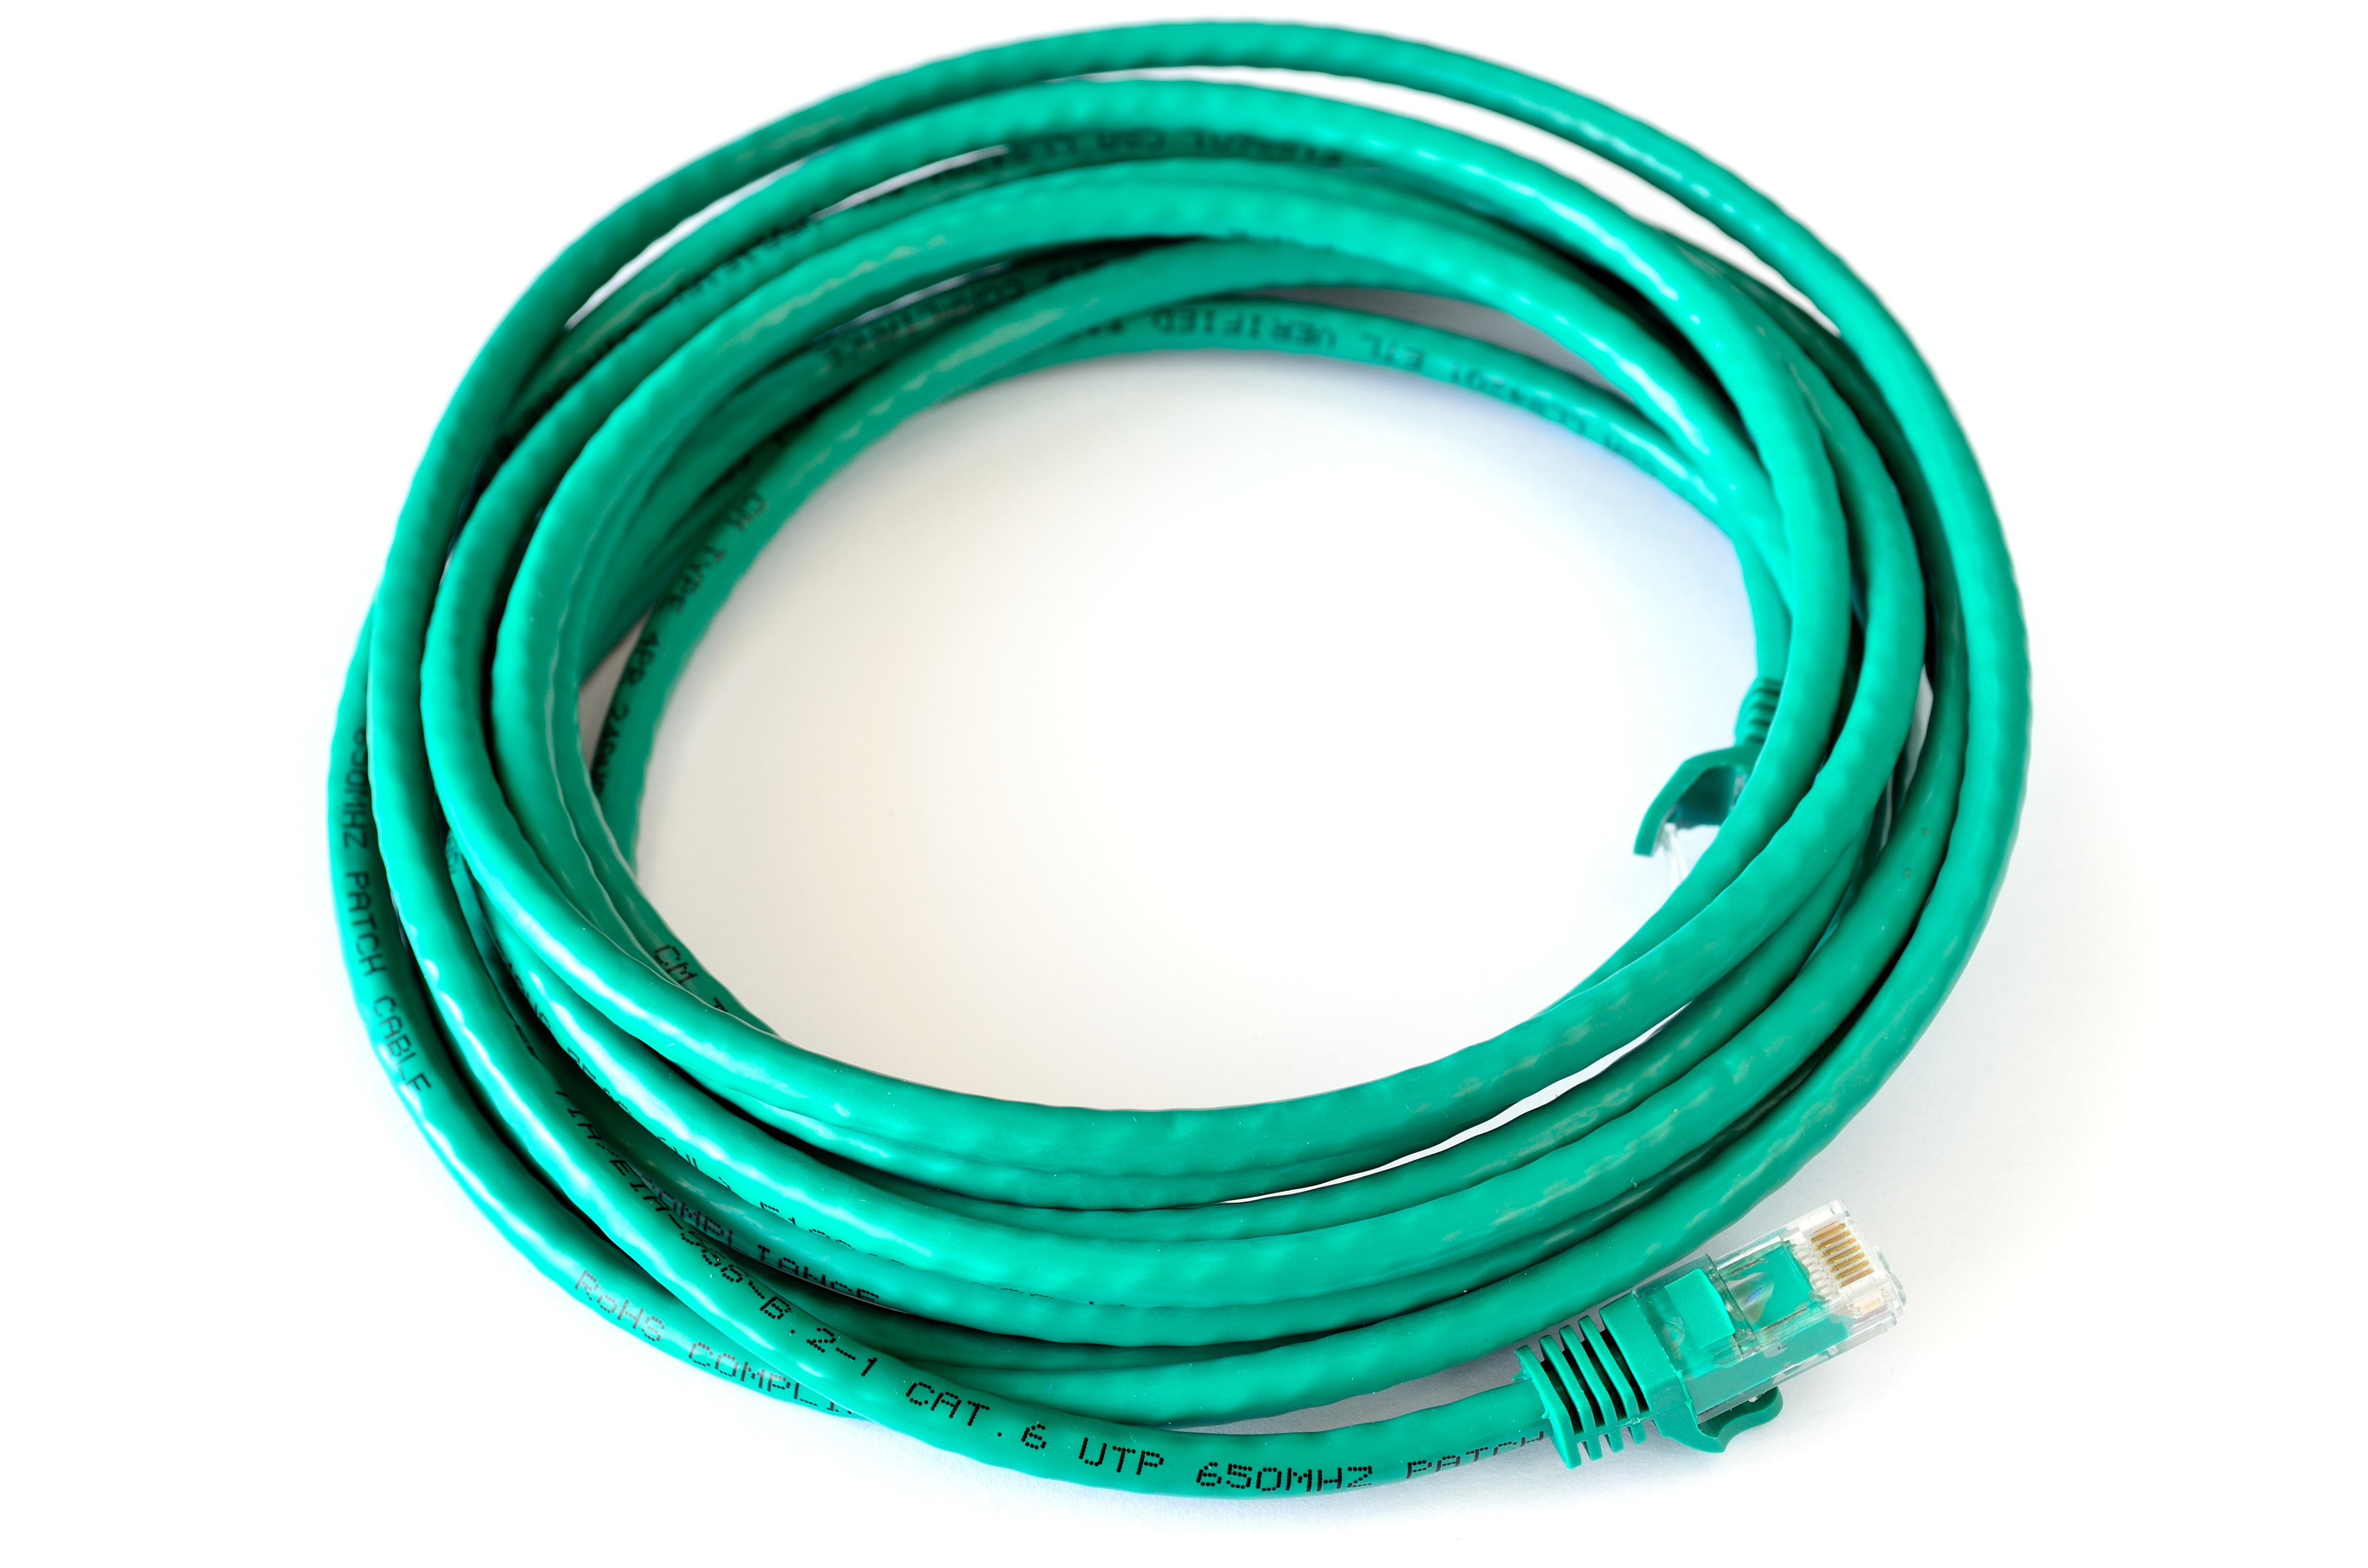 File:EthernetCableGreen.jpg - Wikimedia Commons